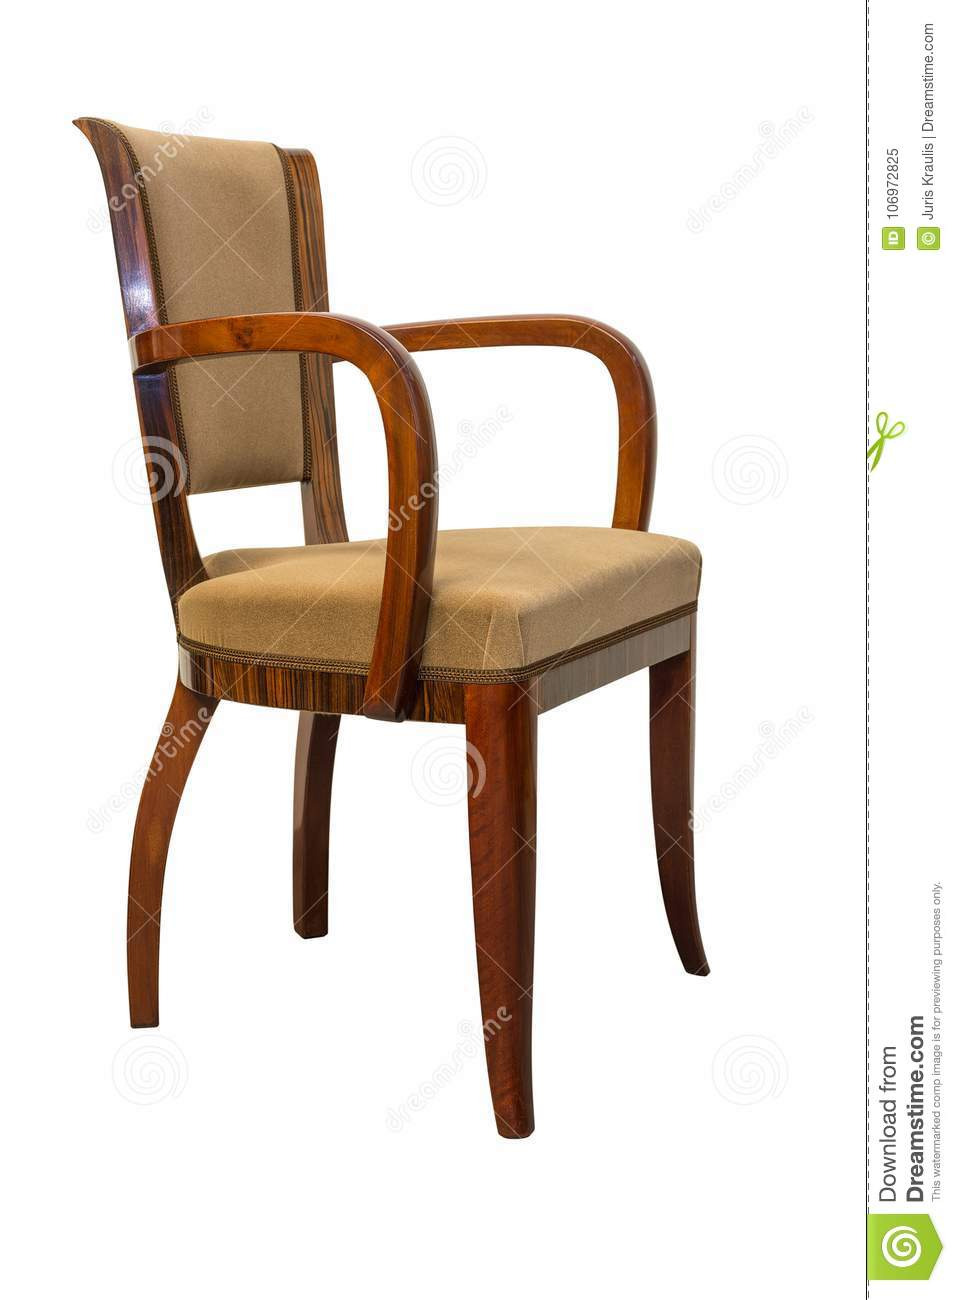 vintage art deco chair isolated white background vintage art deco antique chair isolated white background